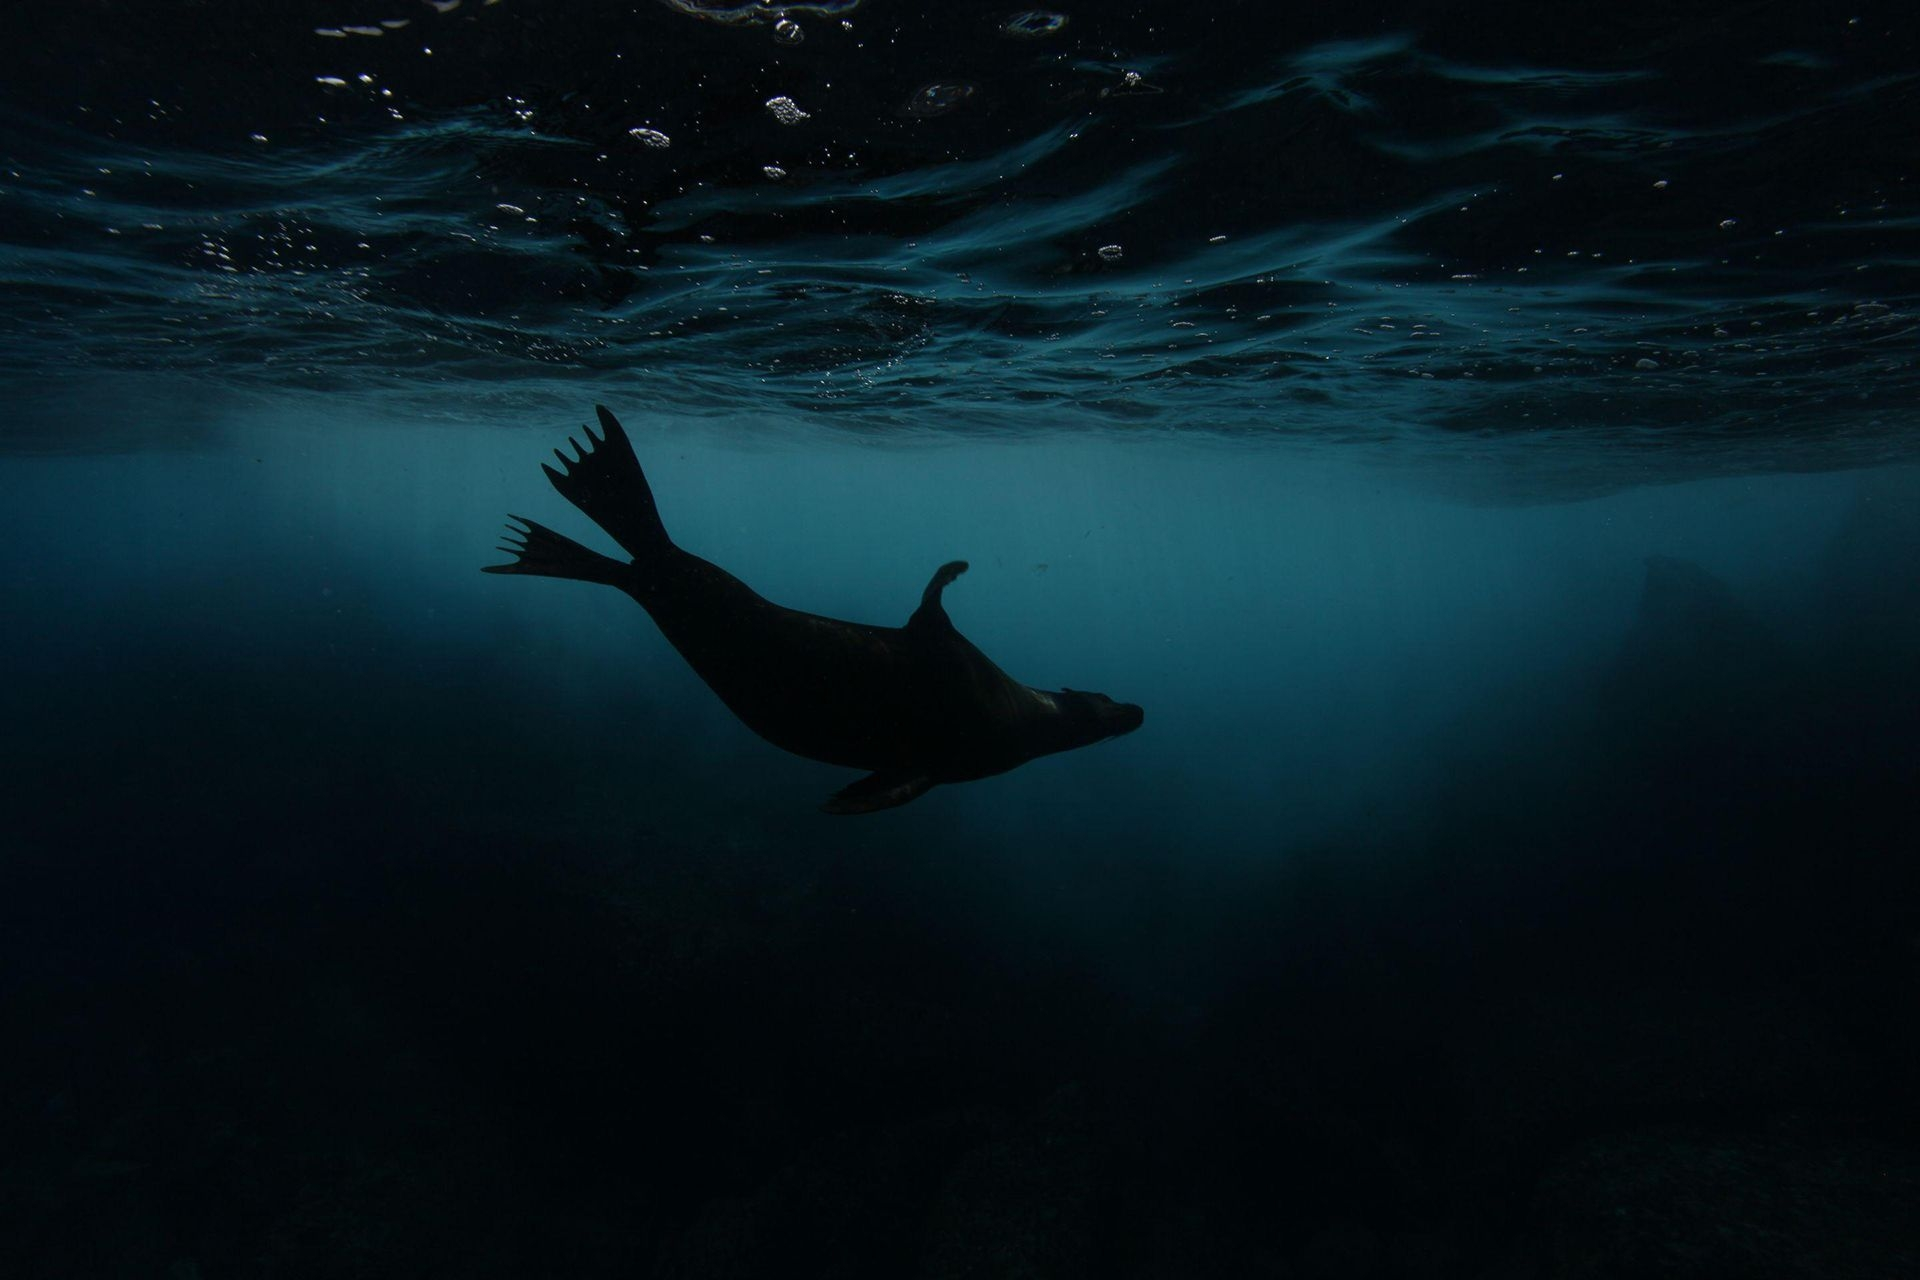 Photograph by Mike Korostelev, National Geographic Your Shot